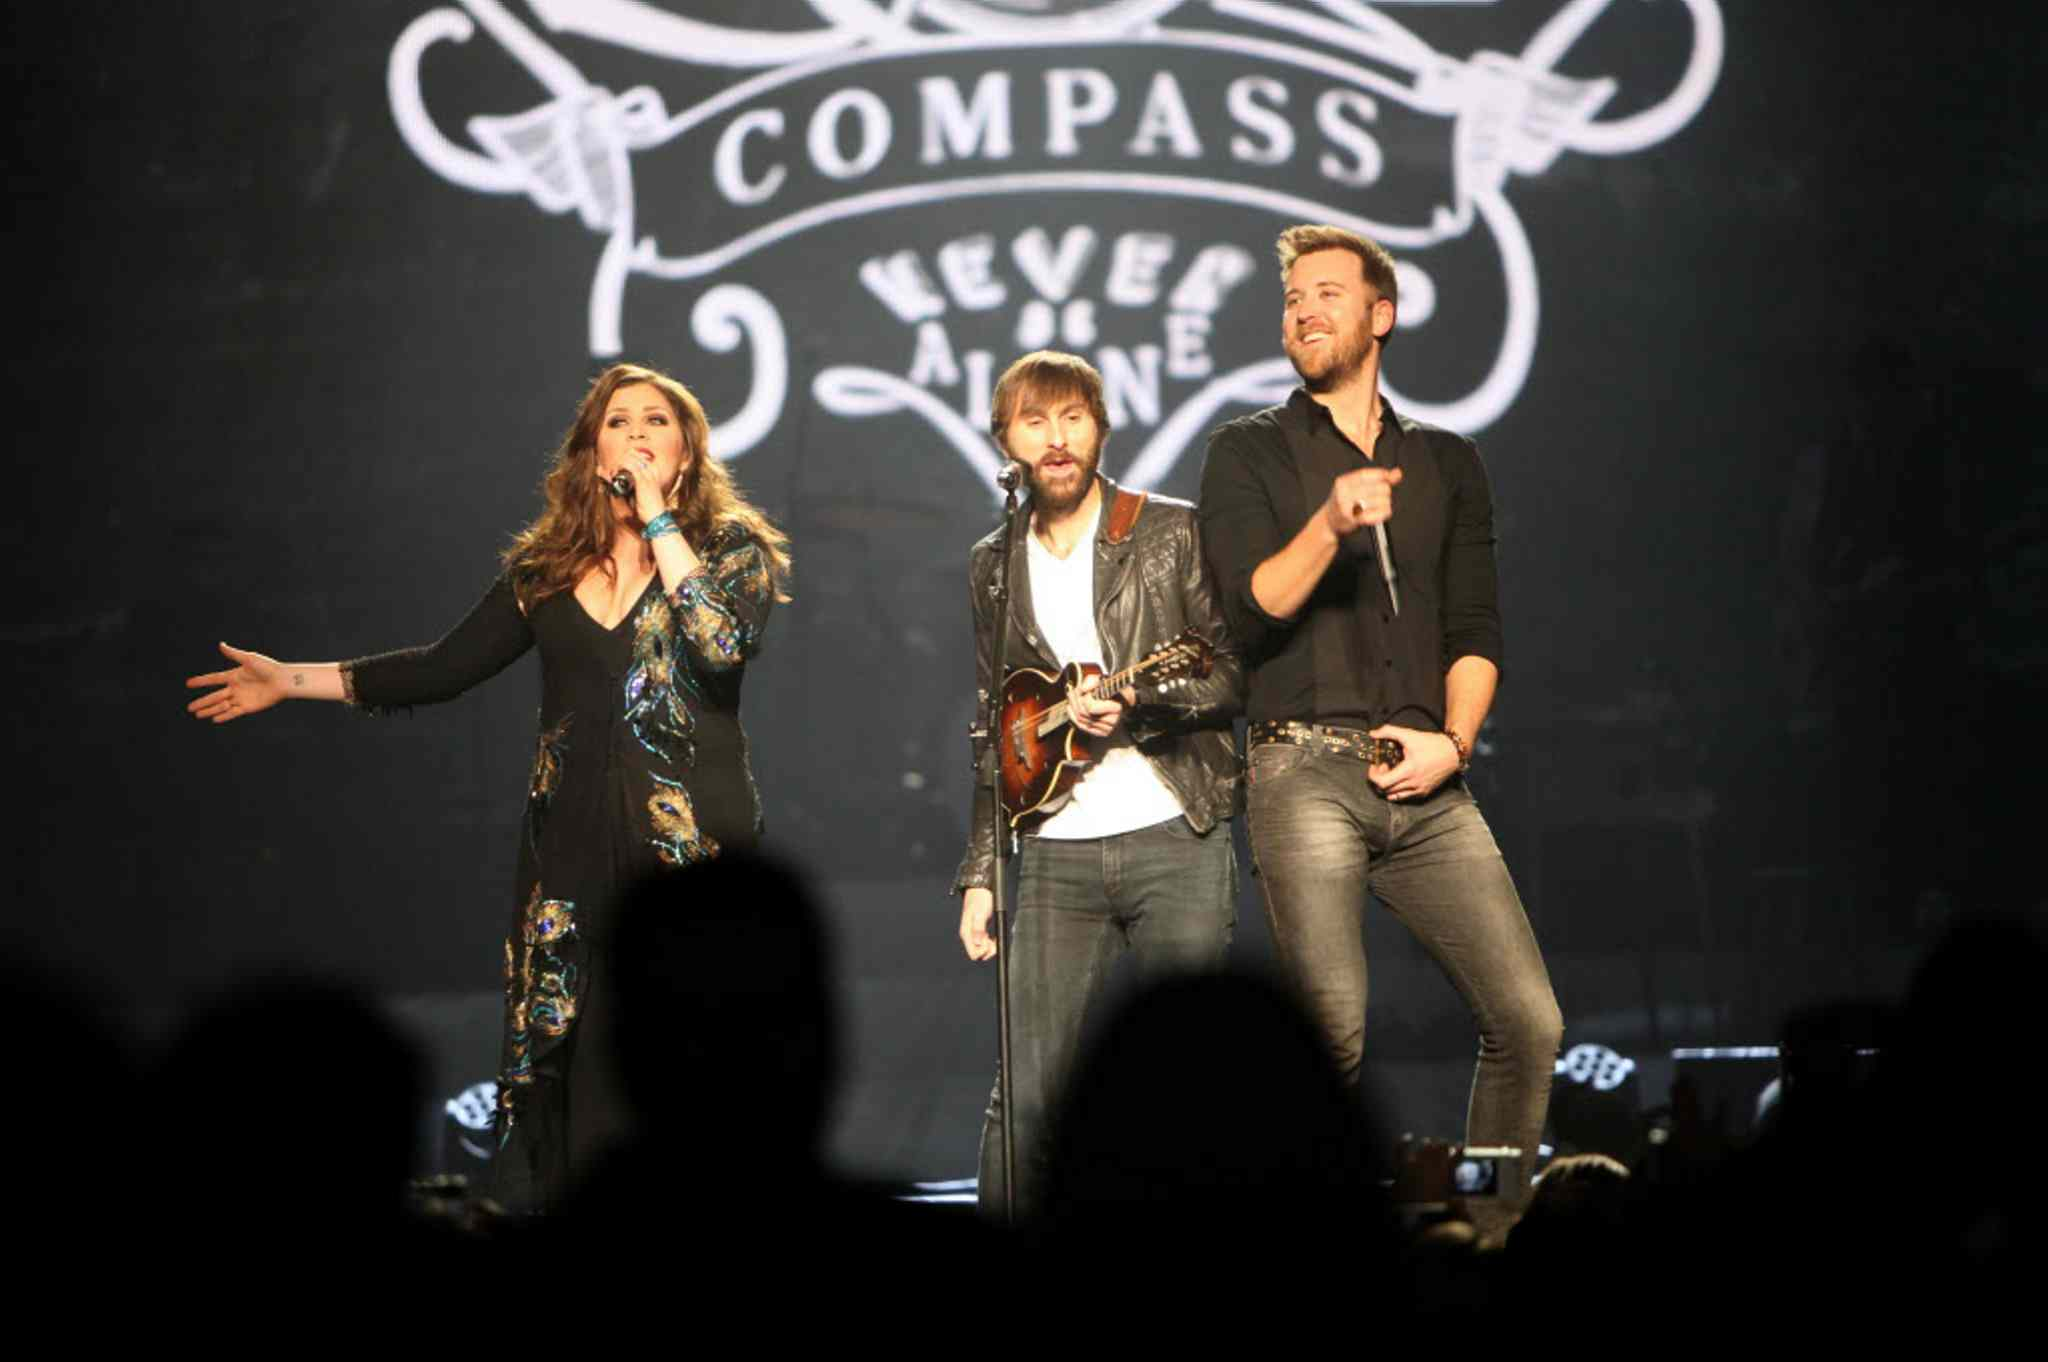 Lady Antebellum lead singers Charles Kelley and Hillary Scott sing with guitarist Dave Haywood.